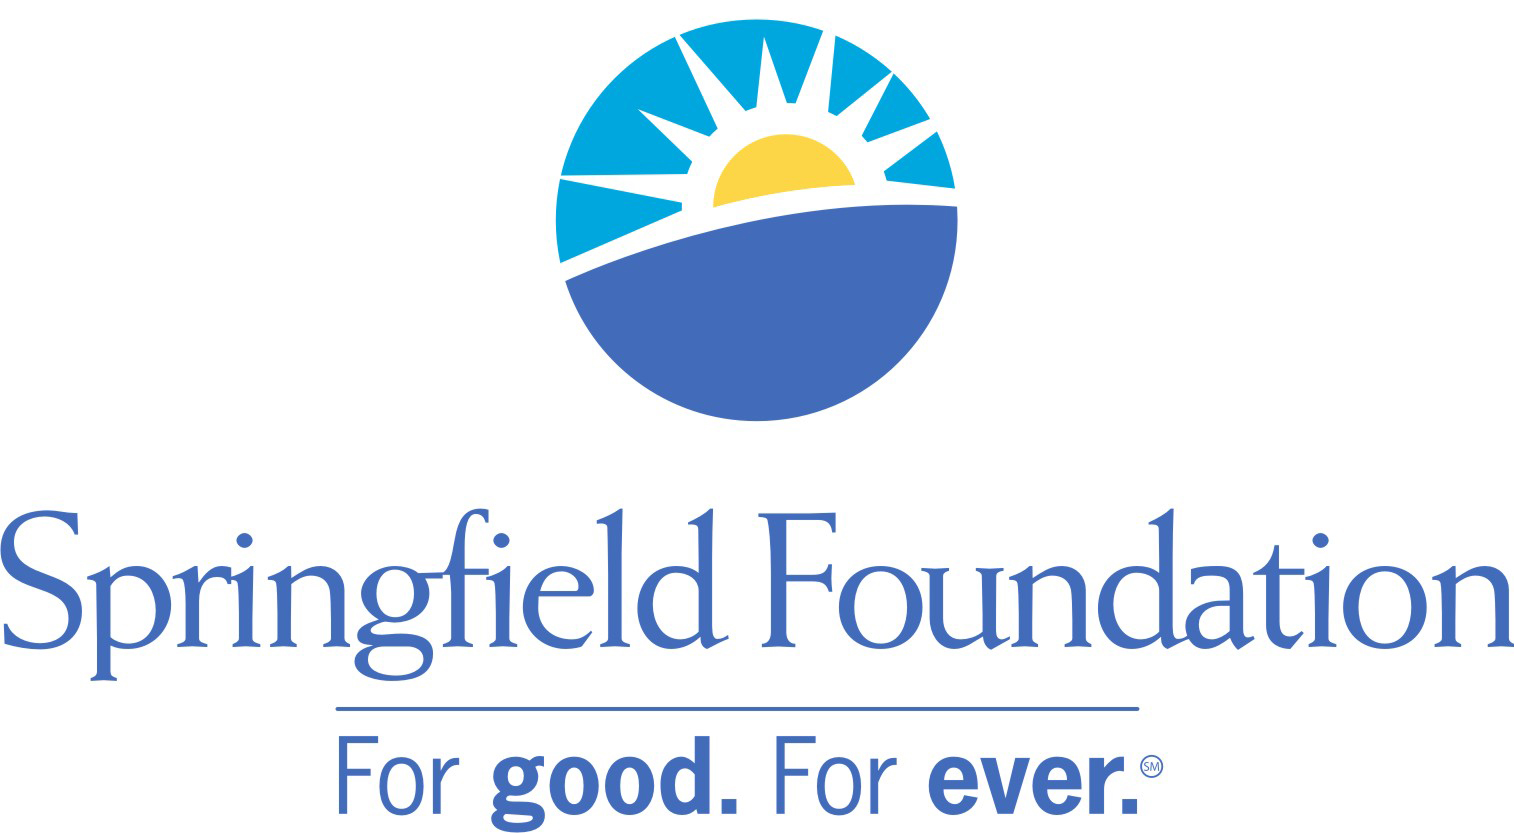 Springfield Foundation Slide Image